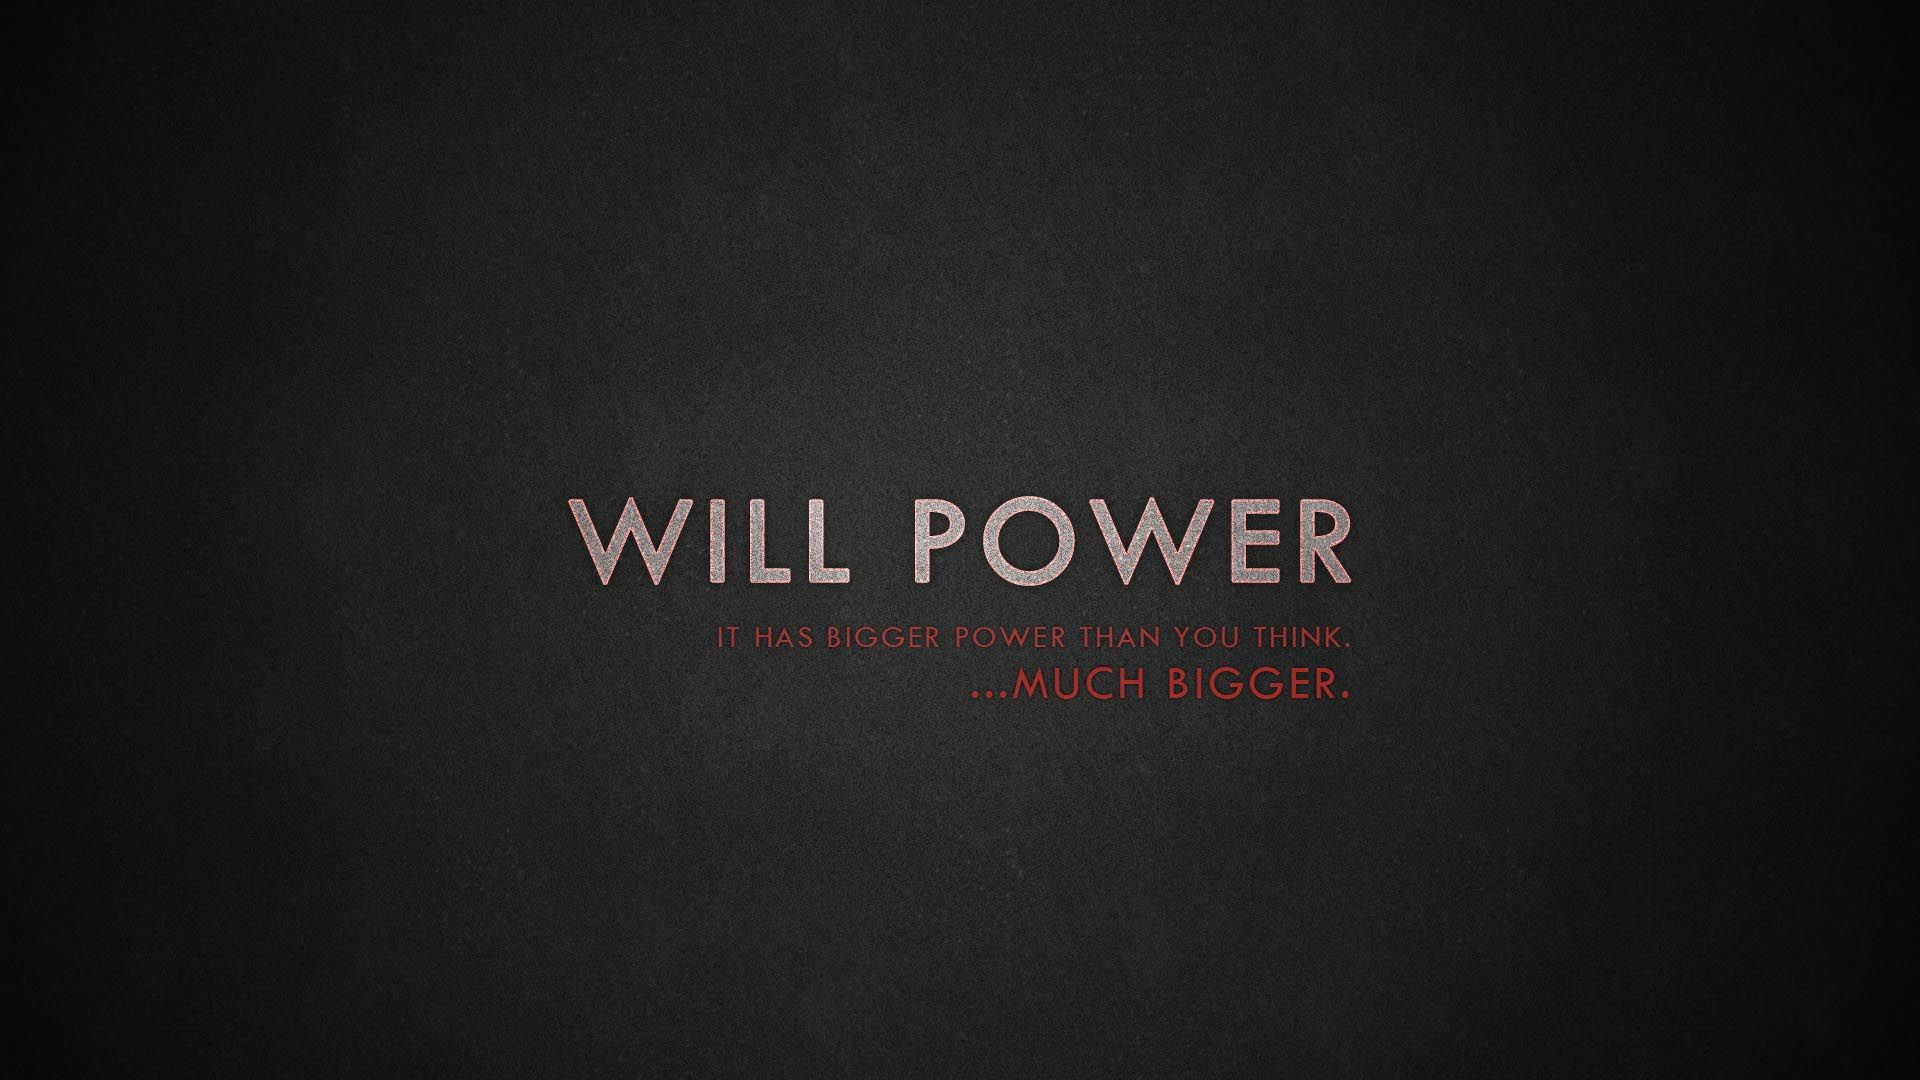 Will Power Hd Wallpaper With Images Motivational Wallpaper